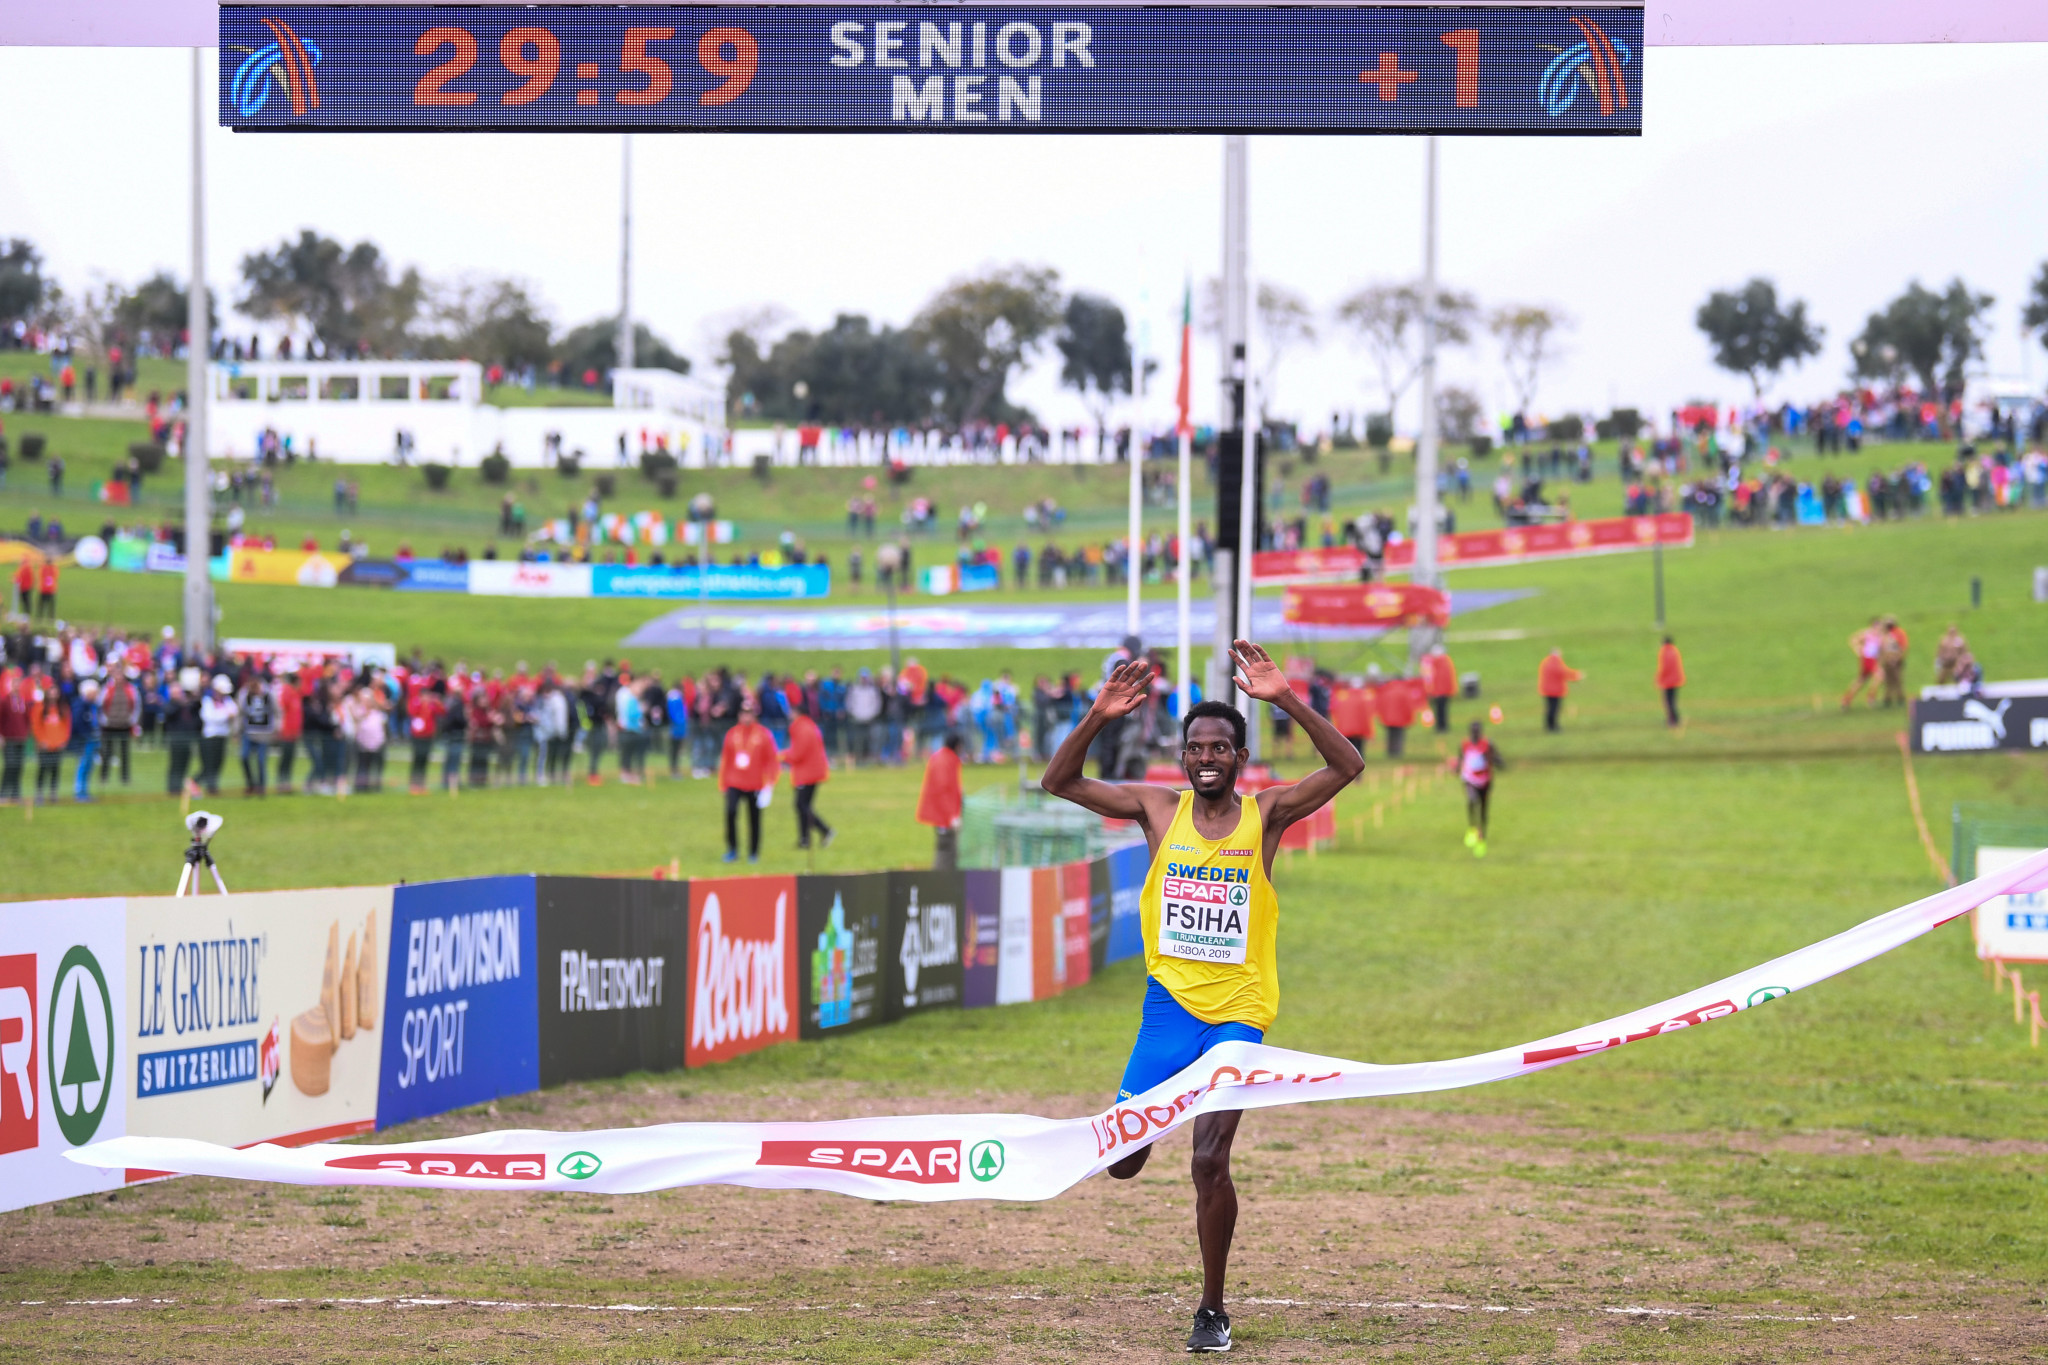 Fsiha to lose European cross country title after AIU confirms four-year doping ban